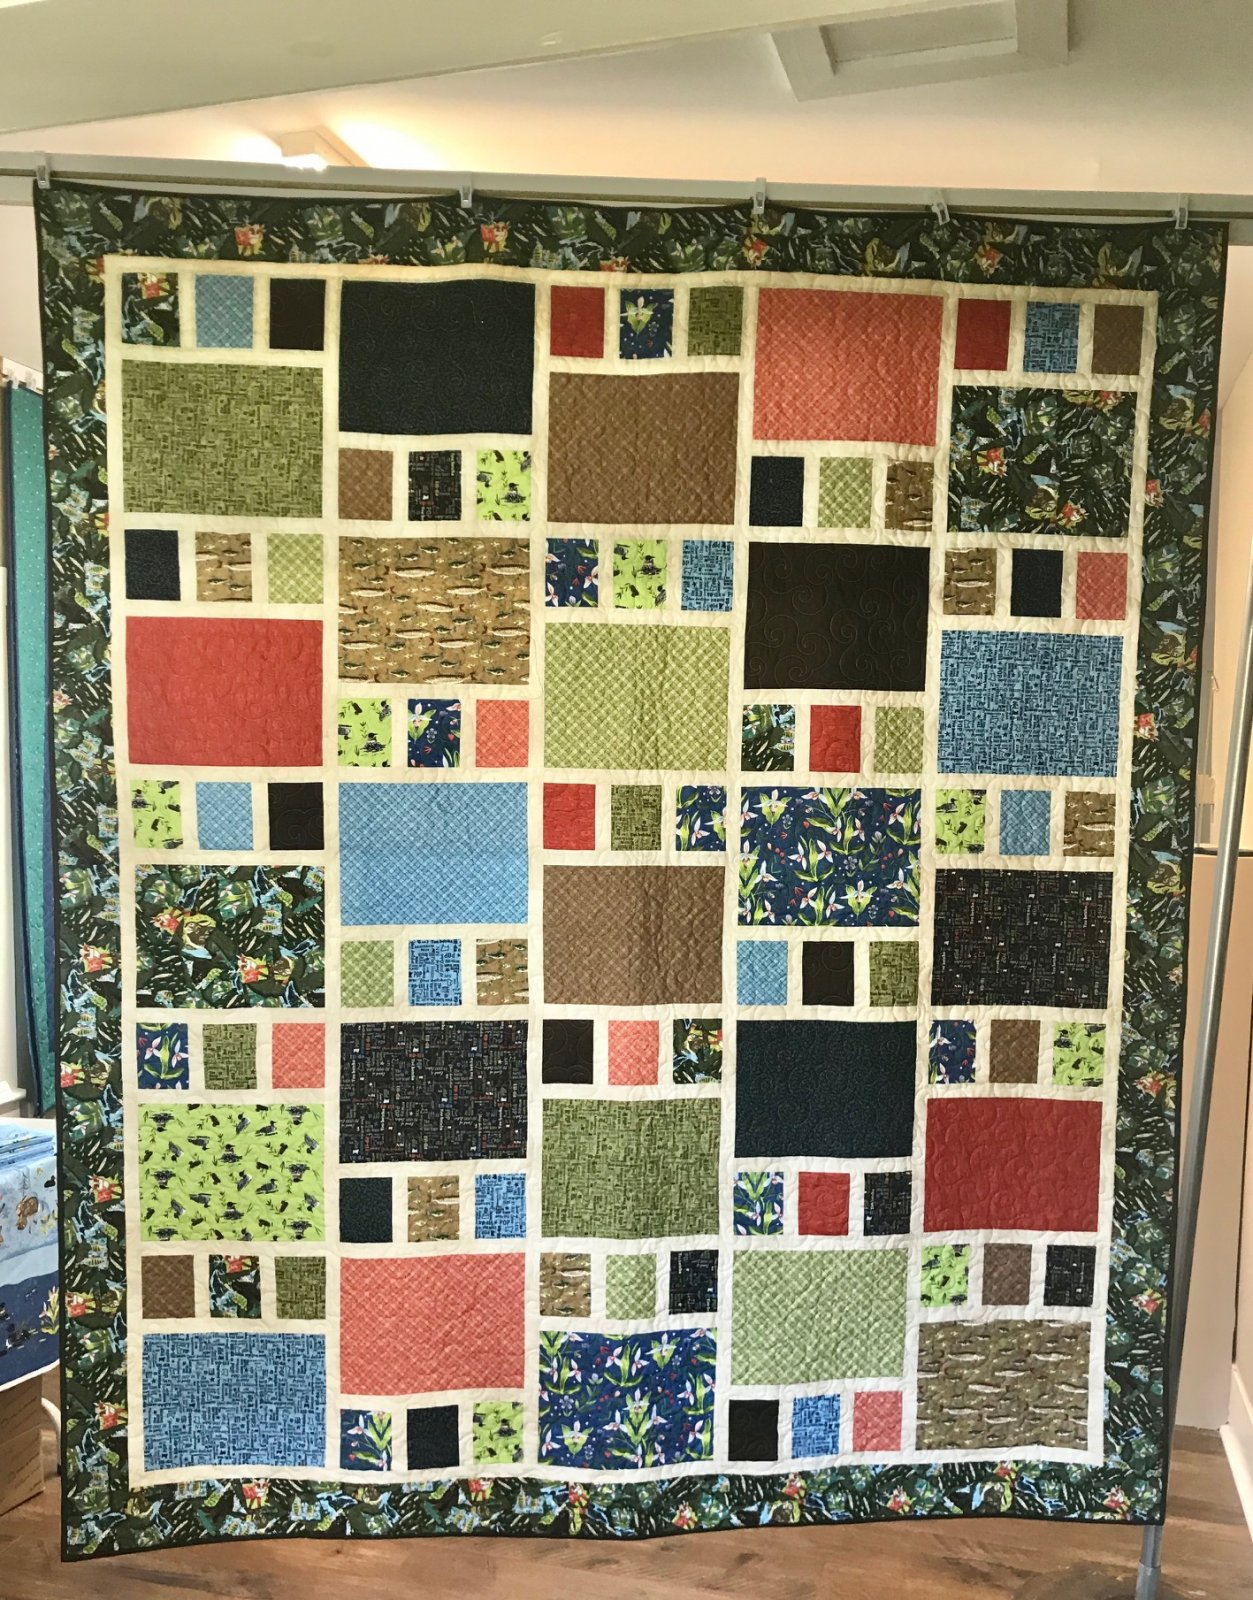 2020 Quilt MN Throw Quilt Kit  77 x 90 inches